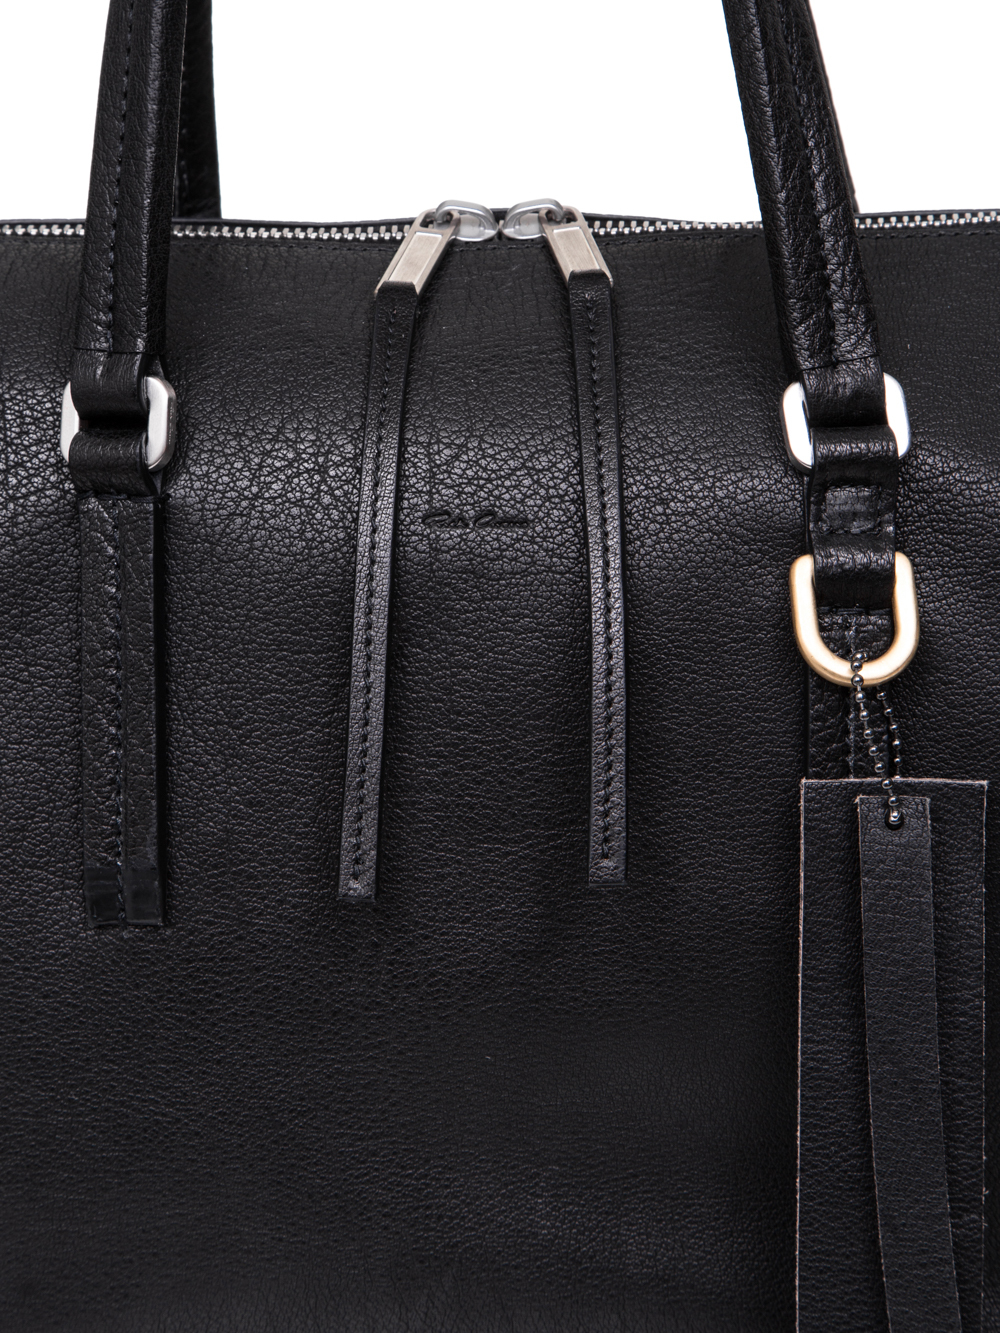 RICK OWENS SS19 BABEL DAY BAG IN BLACK VEGETAL TANNED HORSE LEATHER